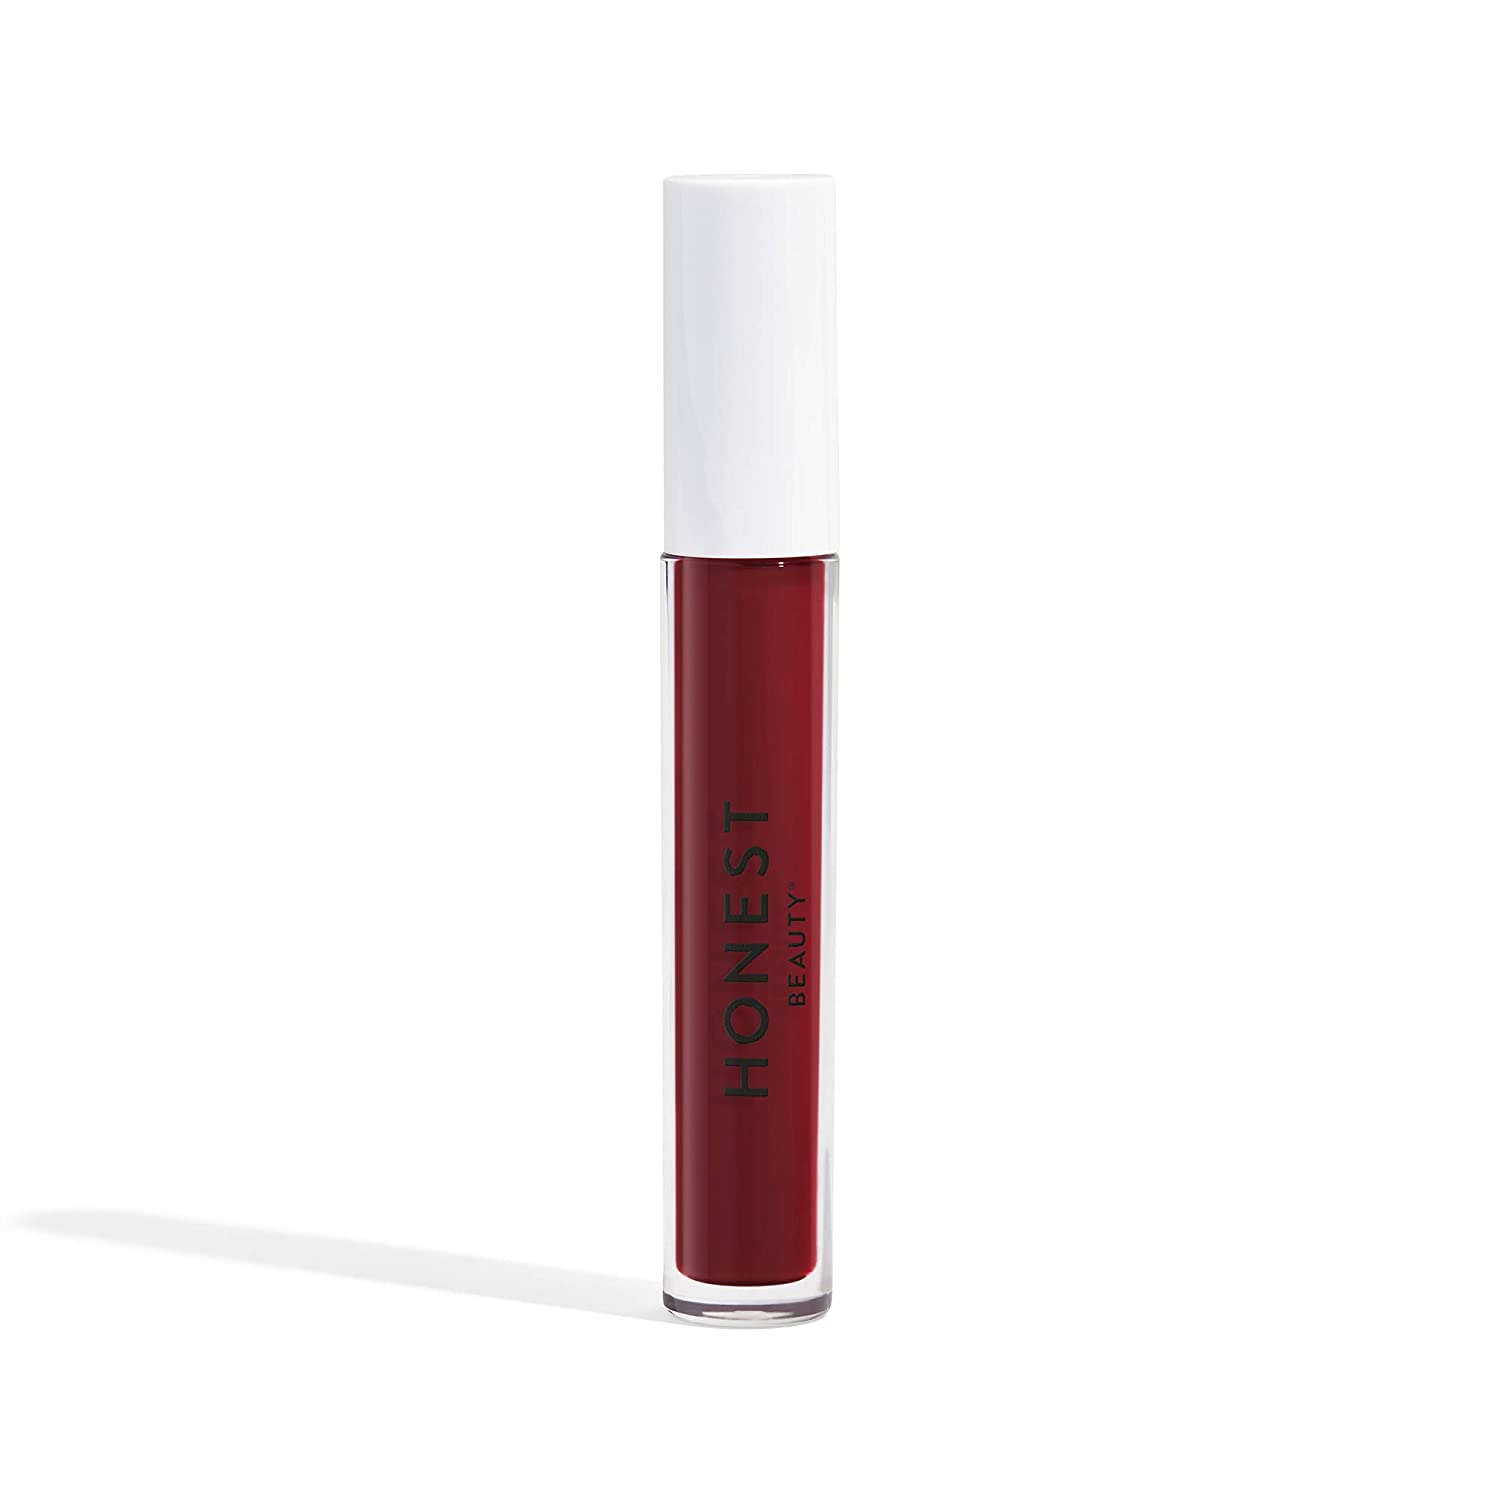 Honest Beauty Liquid Lipstick, Love | Vegan | Hydrating All-Day Wear & Flex Feel | Synthetic Film Formers Free, Silicone Free, Cruelty Free | 0.12 fl. oz.